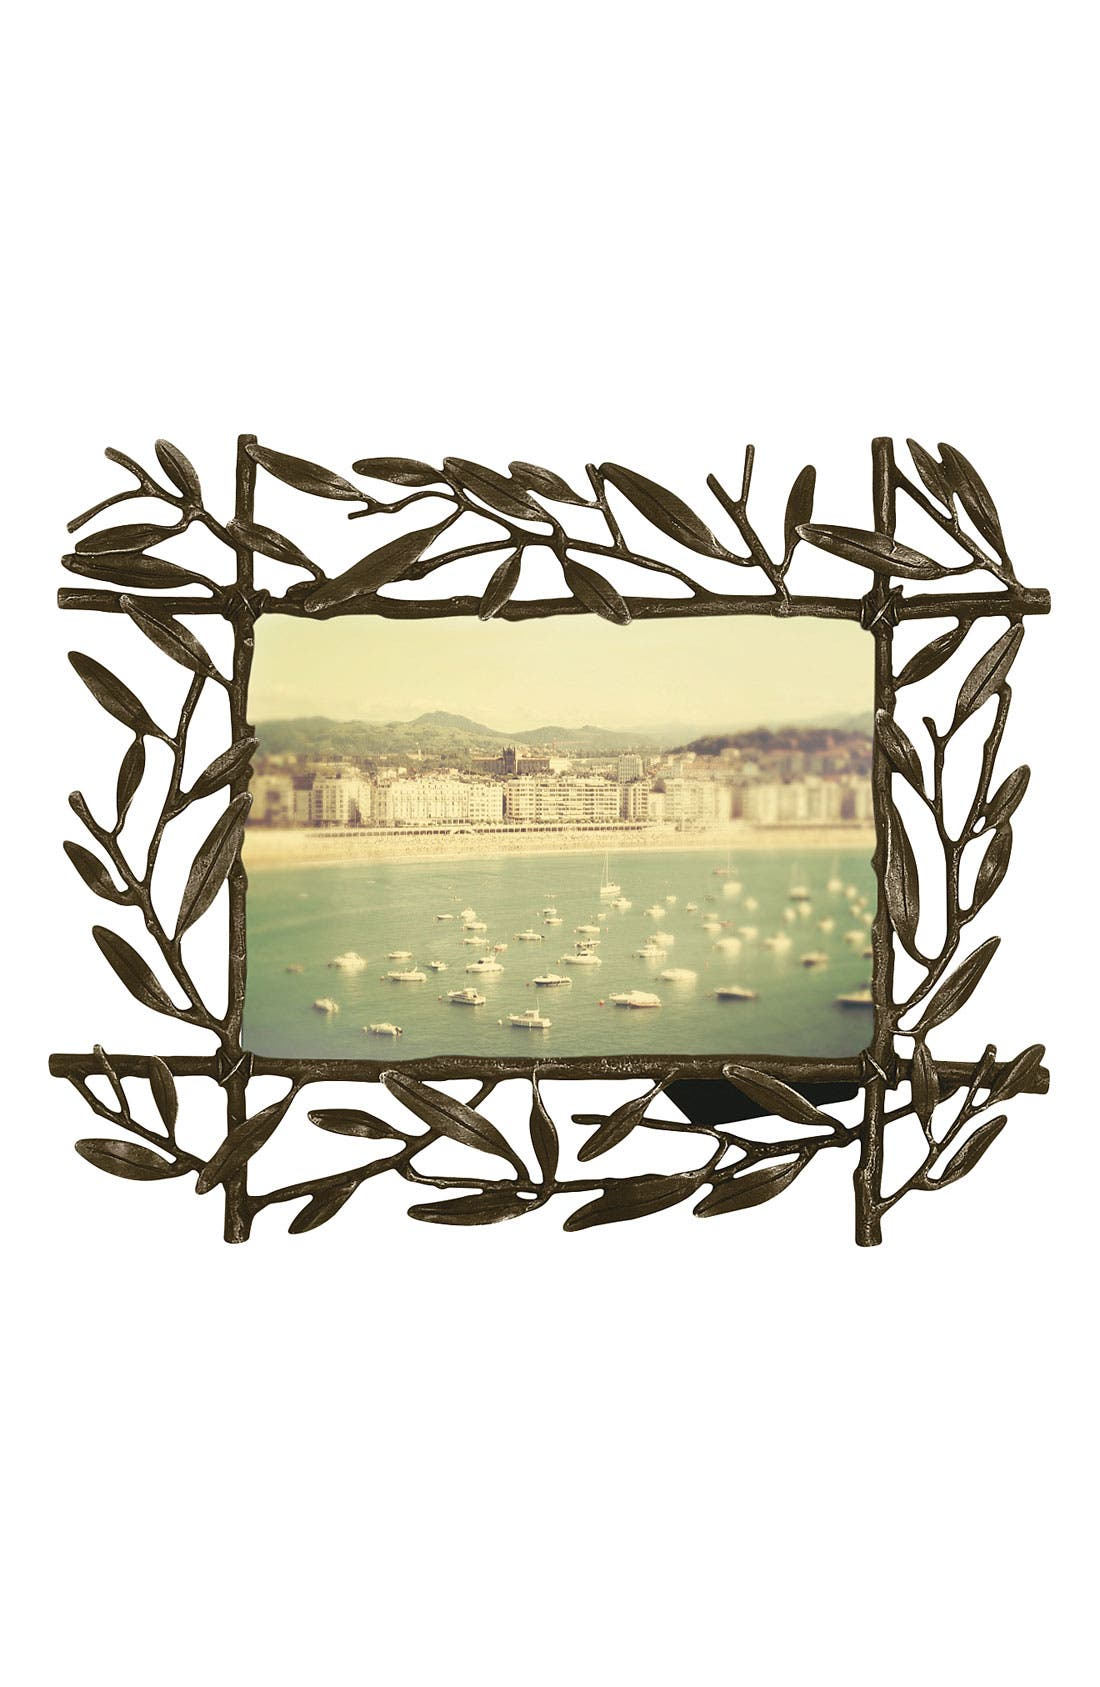 Alternate Image 1 Selected - Michael Aram 'Olive Branch' Oxidized Picture Frame (4x6)